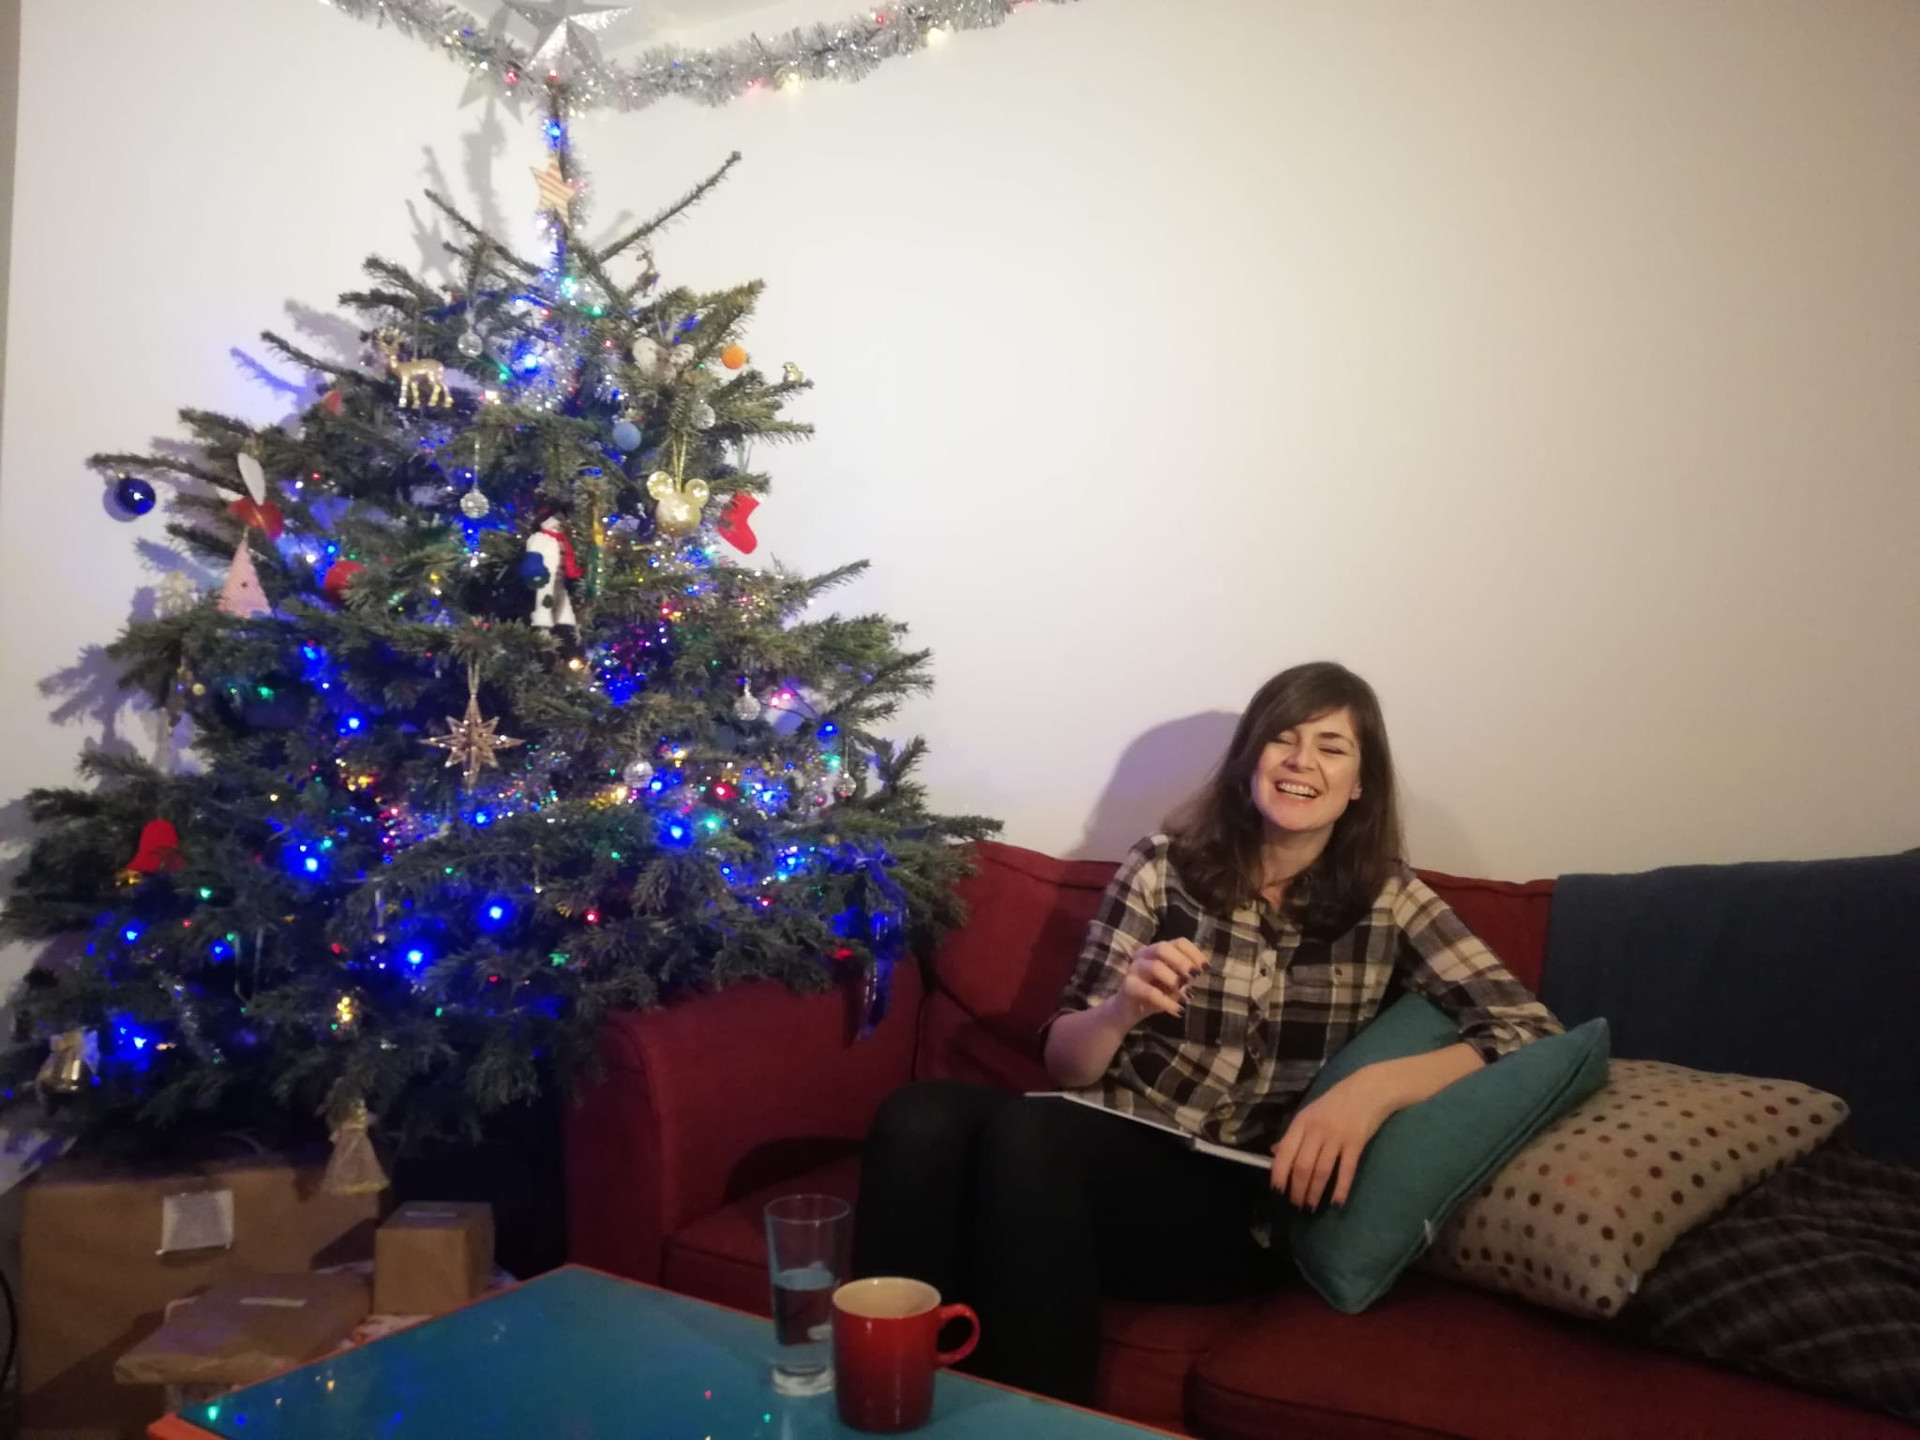 Hannah Duncan, woman laughing on a red sofa next to Christmas tree, writing jokes for SEO Managers, blue table, red mug